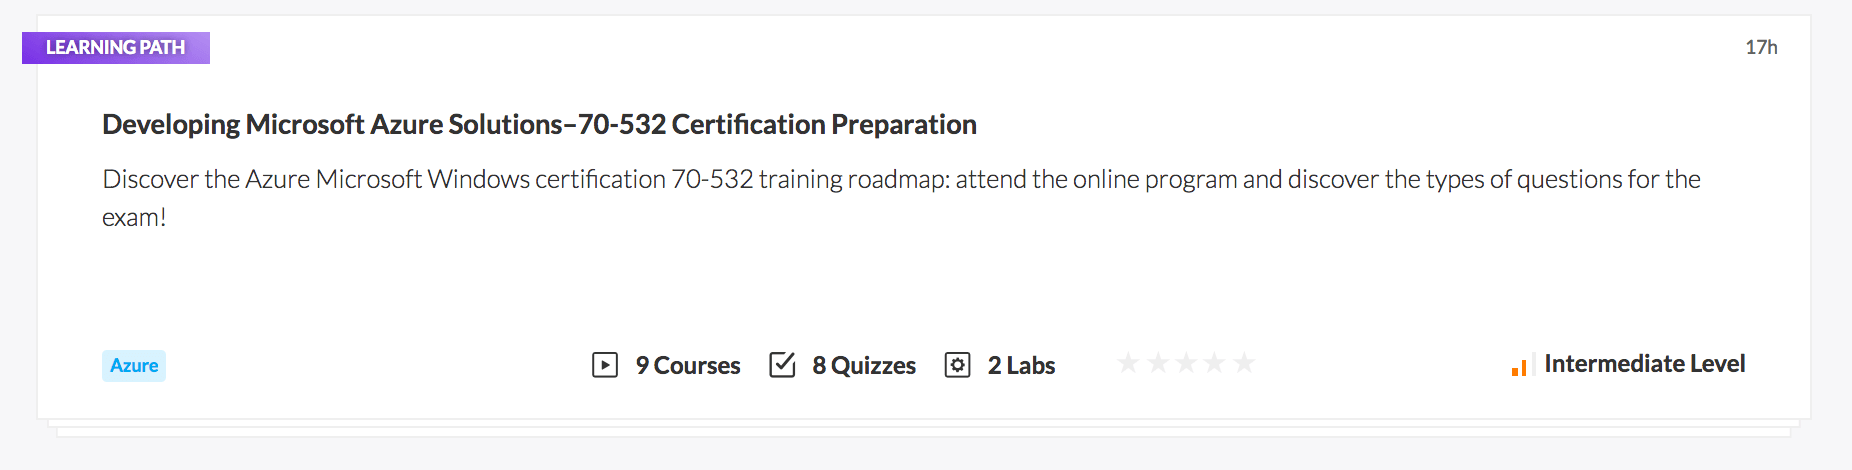 Developing Microsoft Azure Solutions - 70-532 Certification Preparation